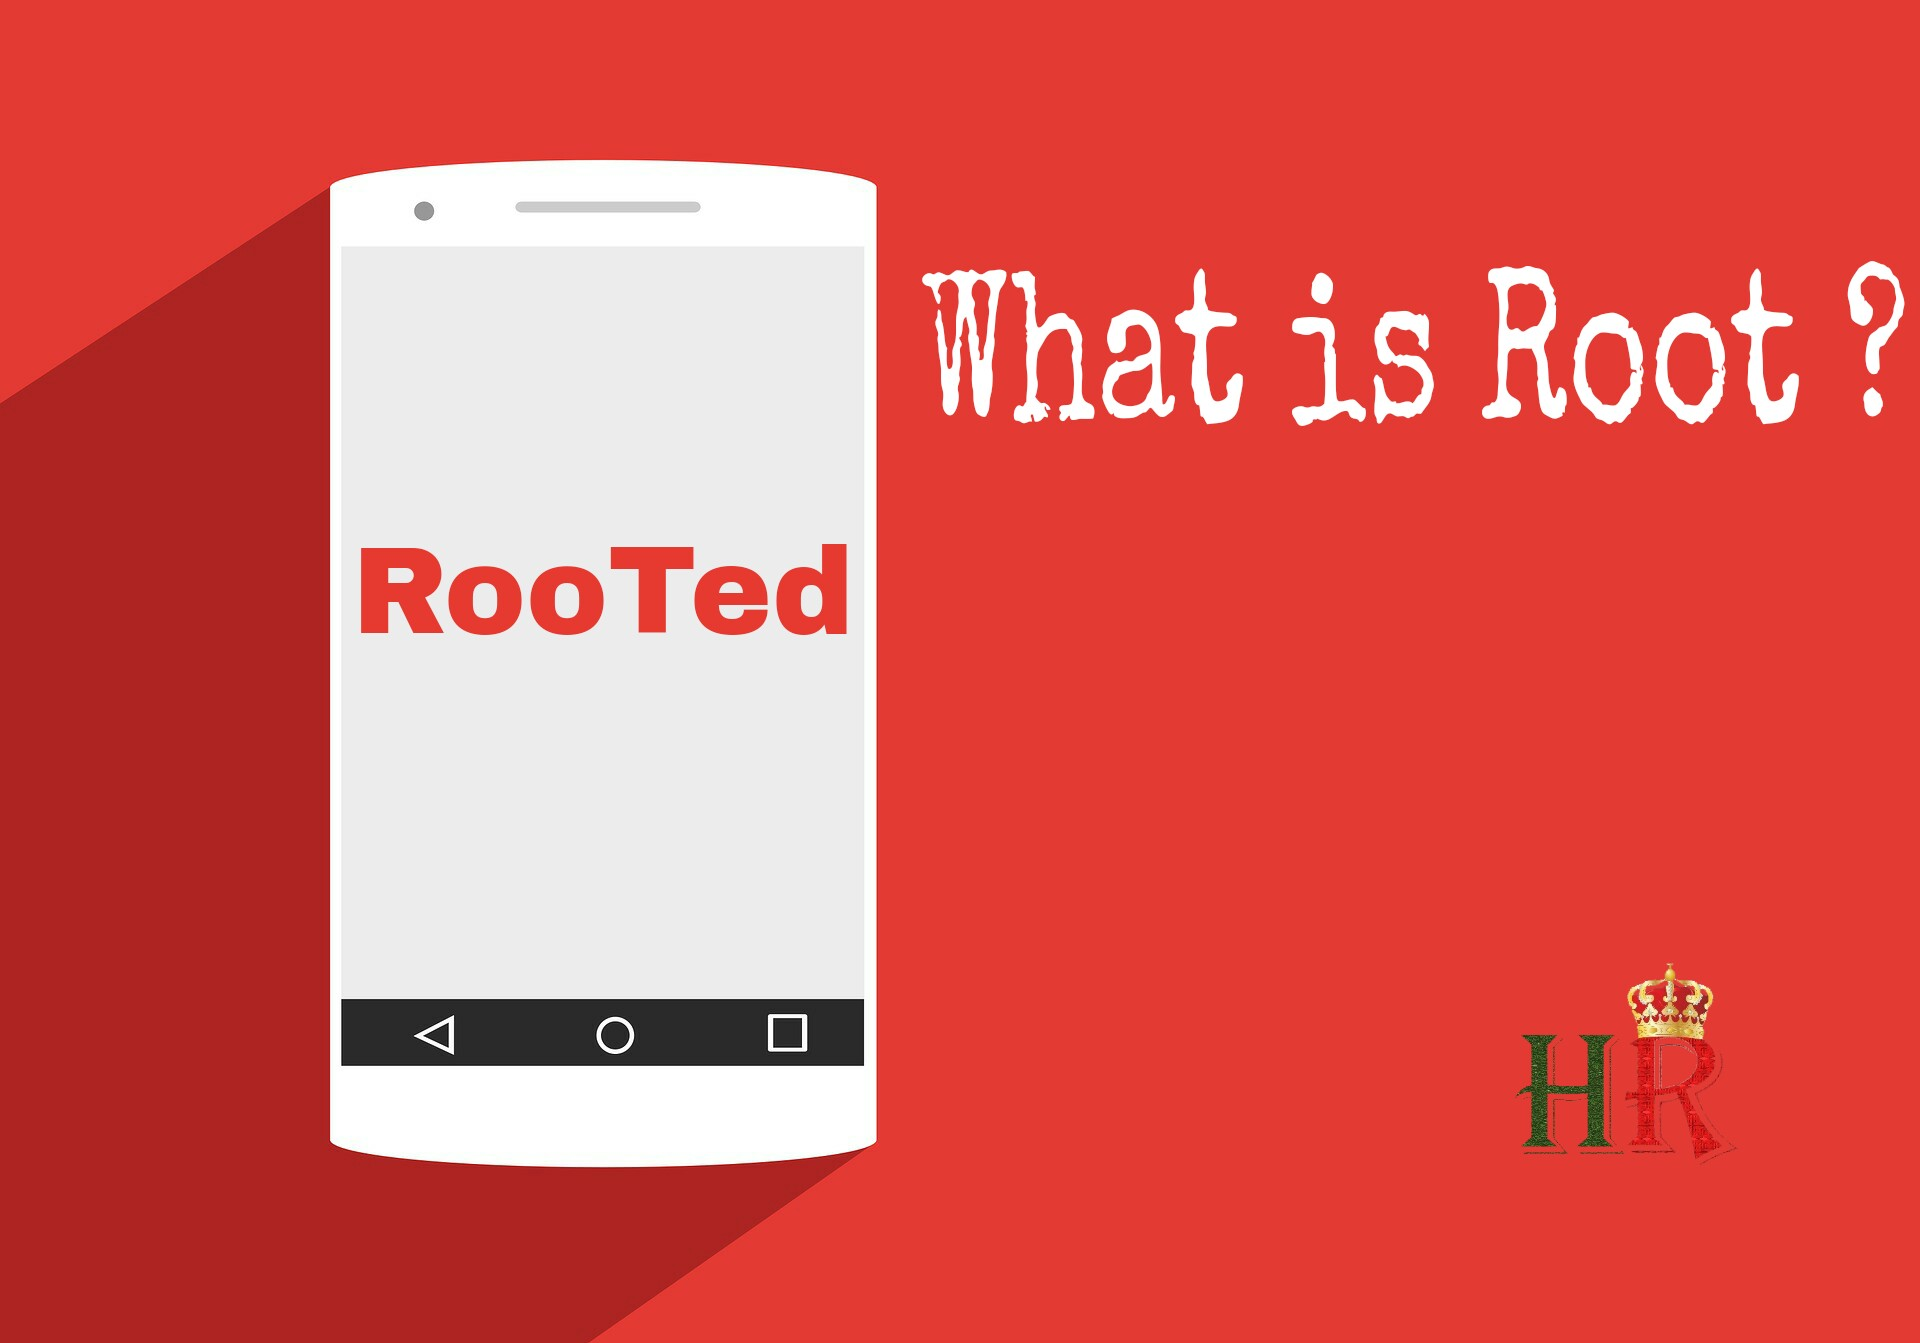 How to root any Android in 2 minutes